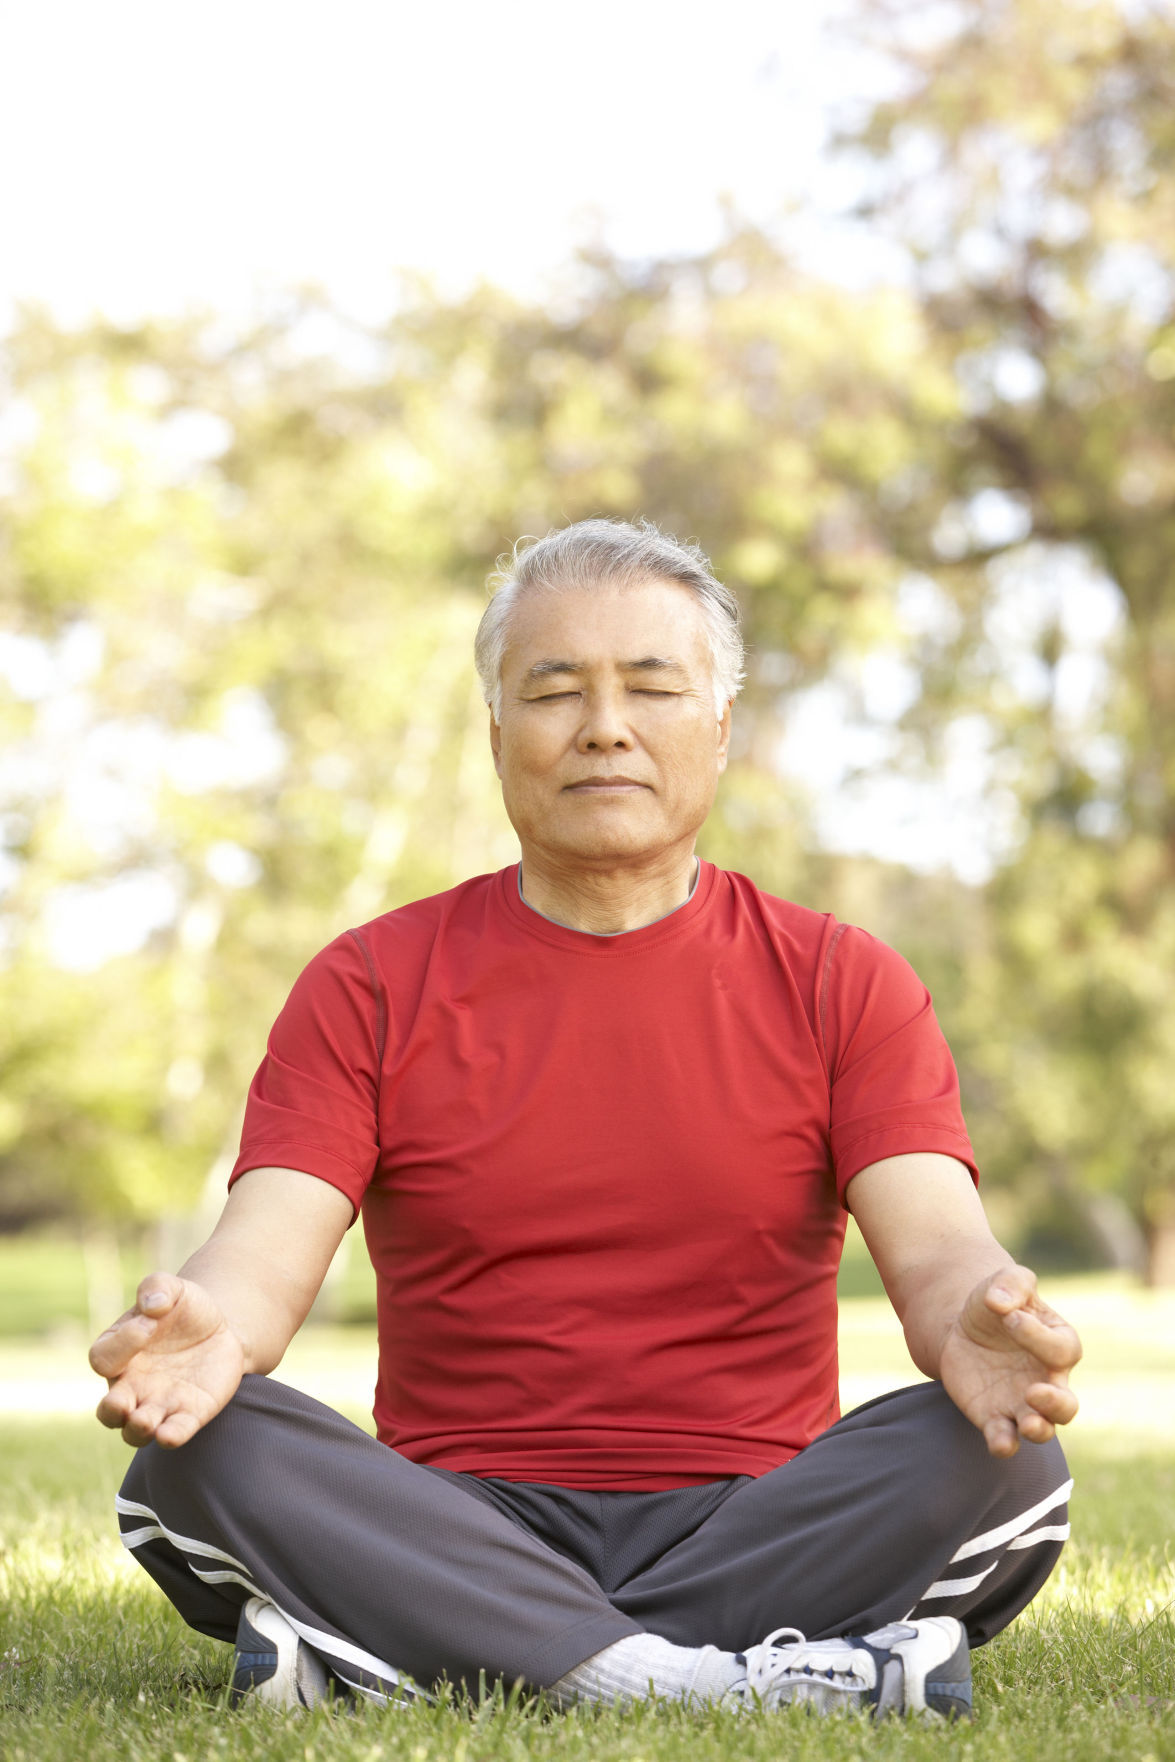 CTW Meditation and breathing practice offer the opportunity to slow down and rest, in addition to numerous health benefits.